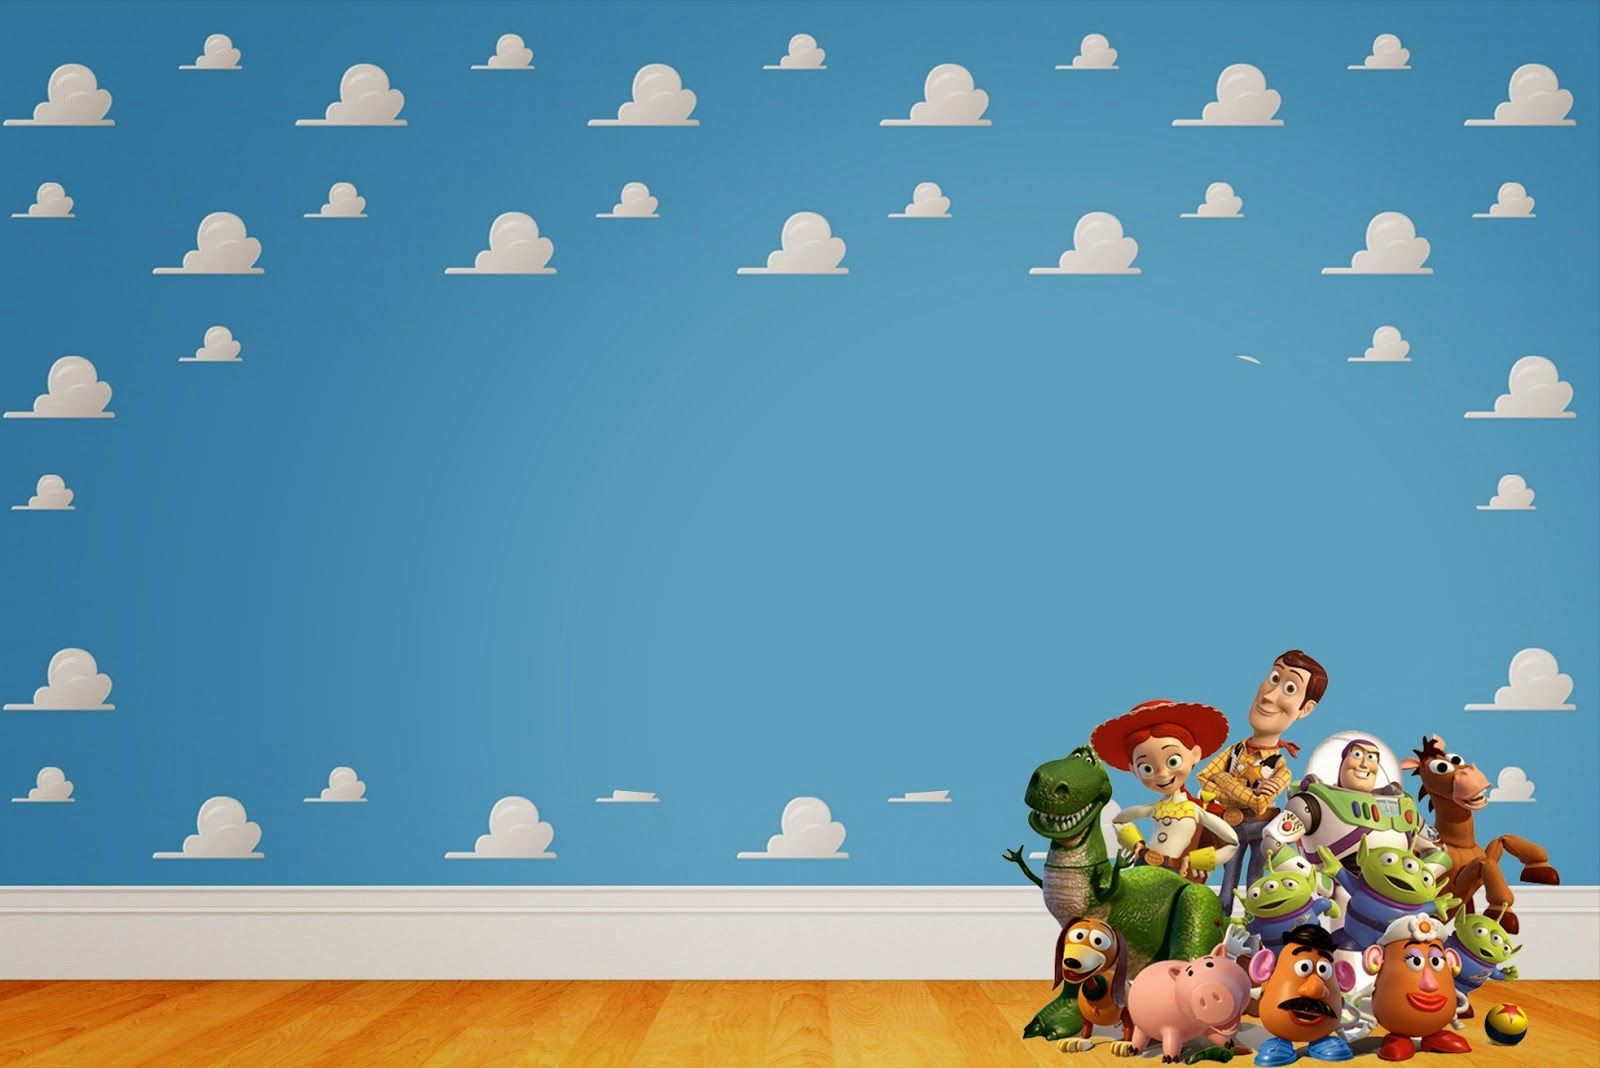 Toy Story 3: Free Printable Invitations. | Downloads | Toy Story - Free Printable Toy Story 3 Birthday Invitations